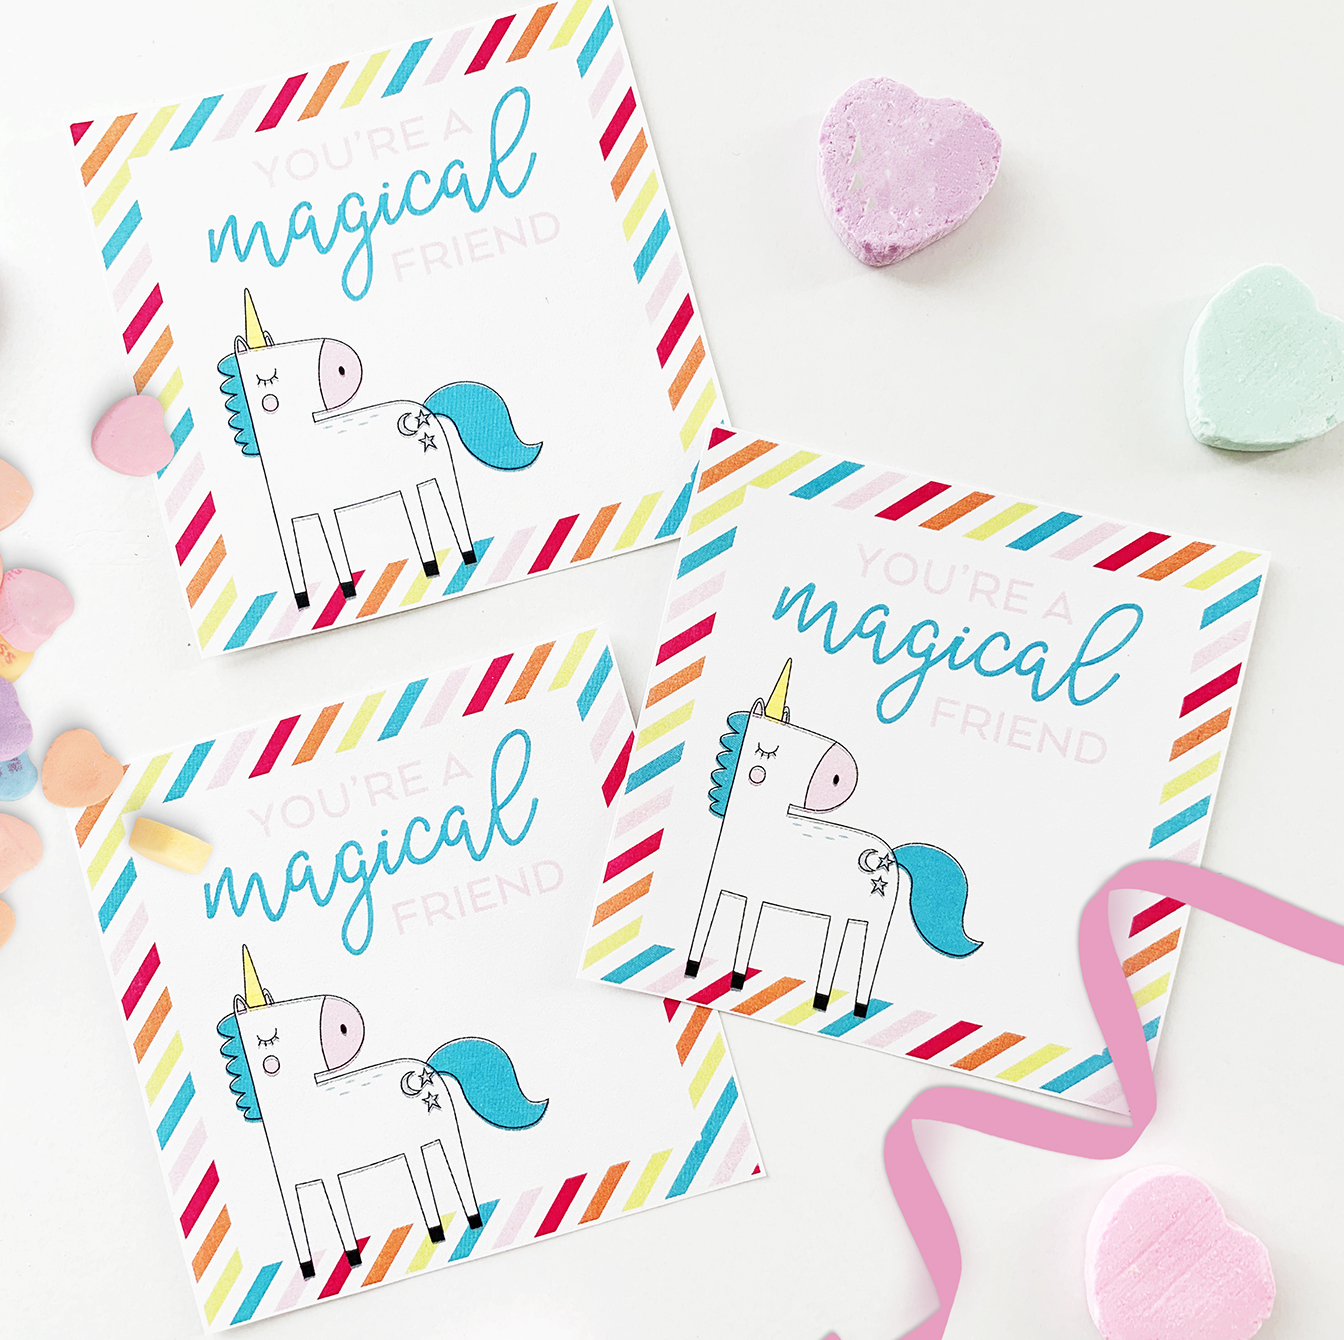 photograph regarding Free Unicorn Printable referred to as Absolutely free Unicorn Printable Valentine Playing cards - Pineapple Paper Co.